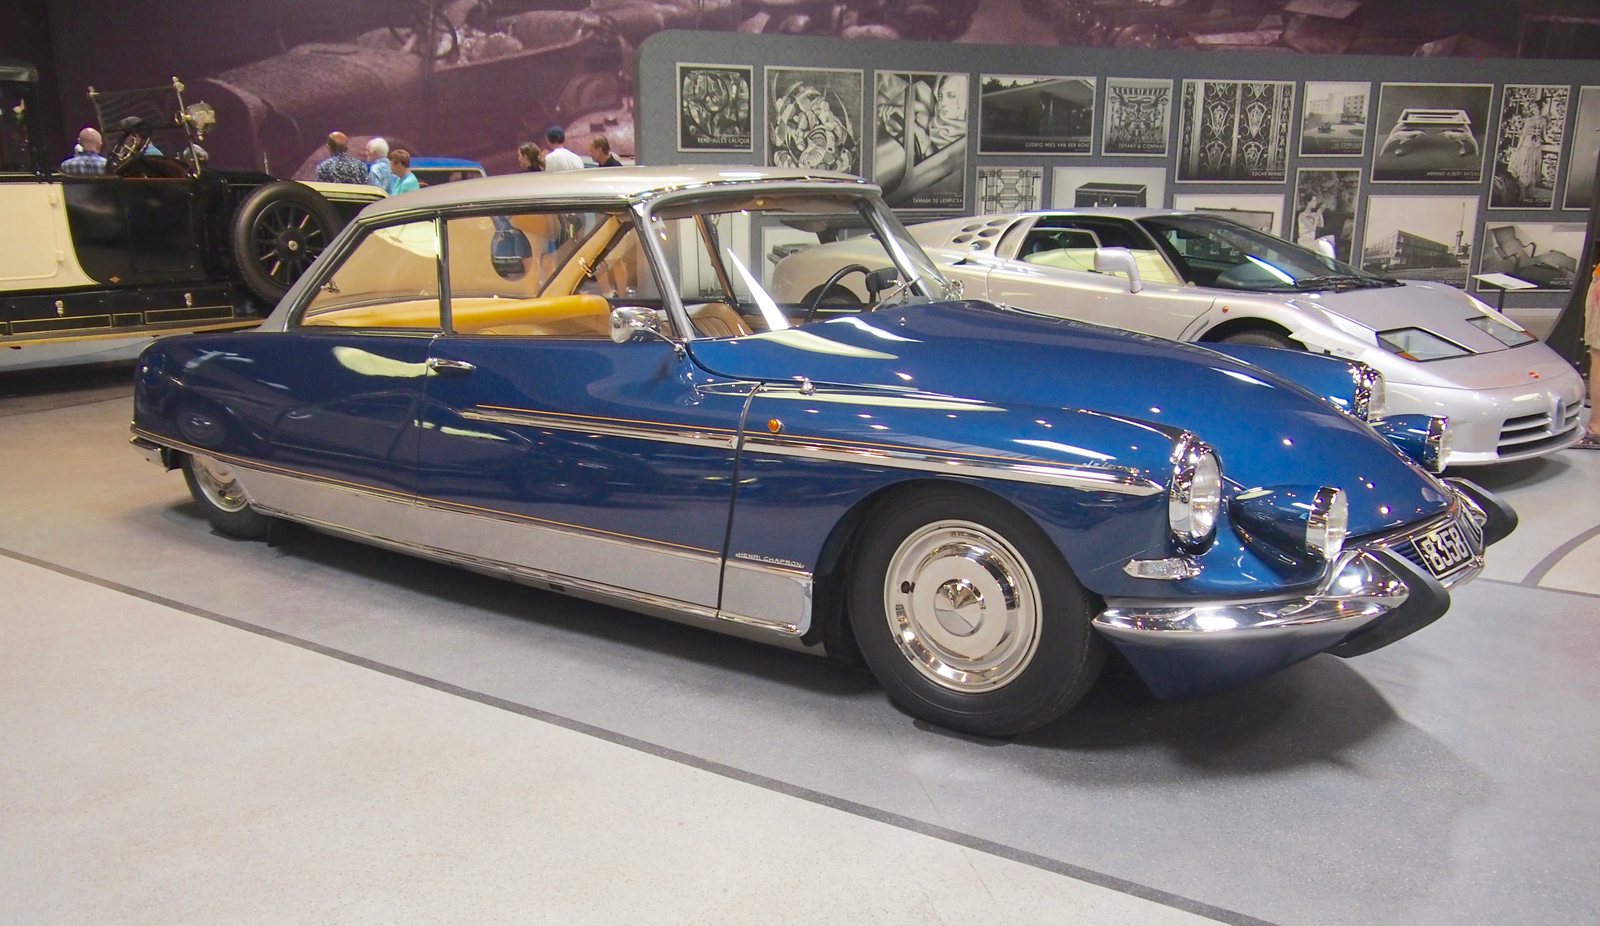 Speaking of Henri Chapron, there were several lovely Chapron bodied DS's. This is the Le Leman from '66.